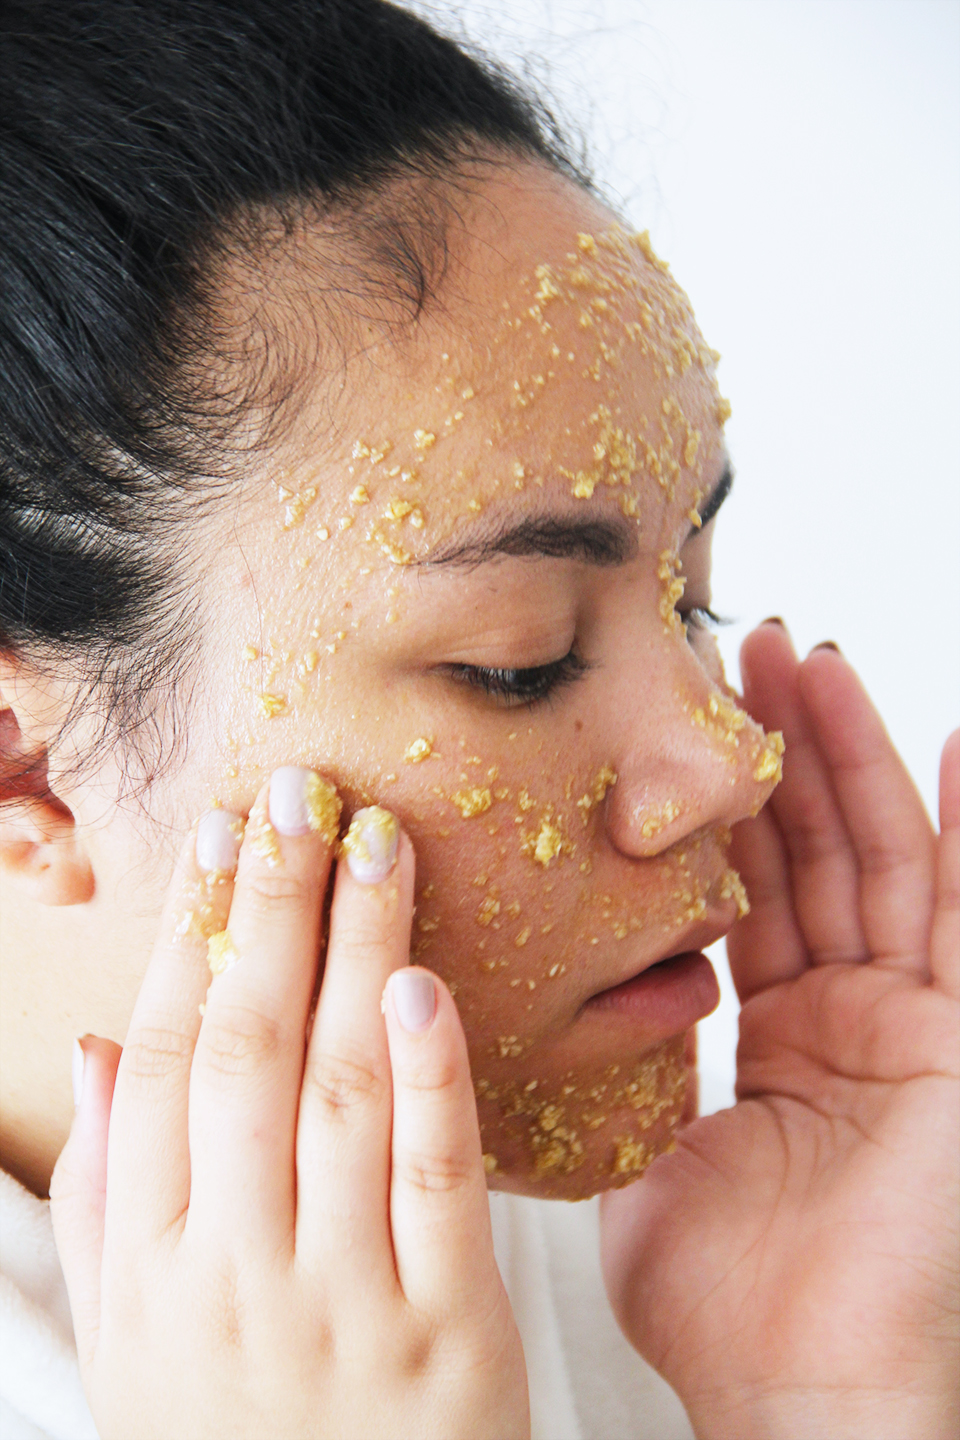 face-scrub-home-made-honey-oatmeal-olive-oil-beauty-skincare-blogger-DIY